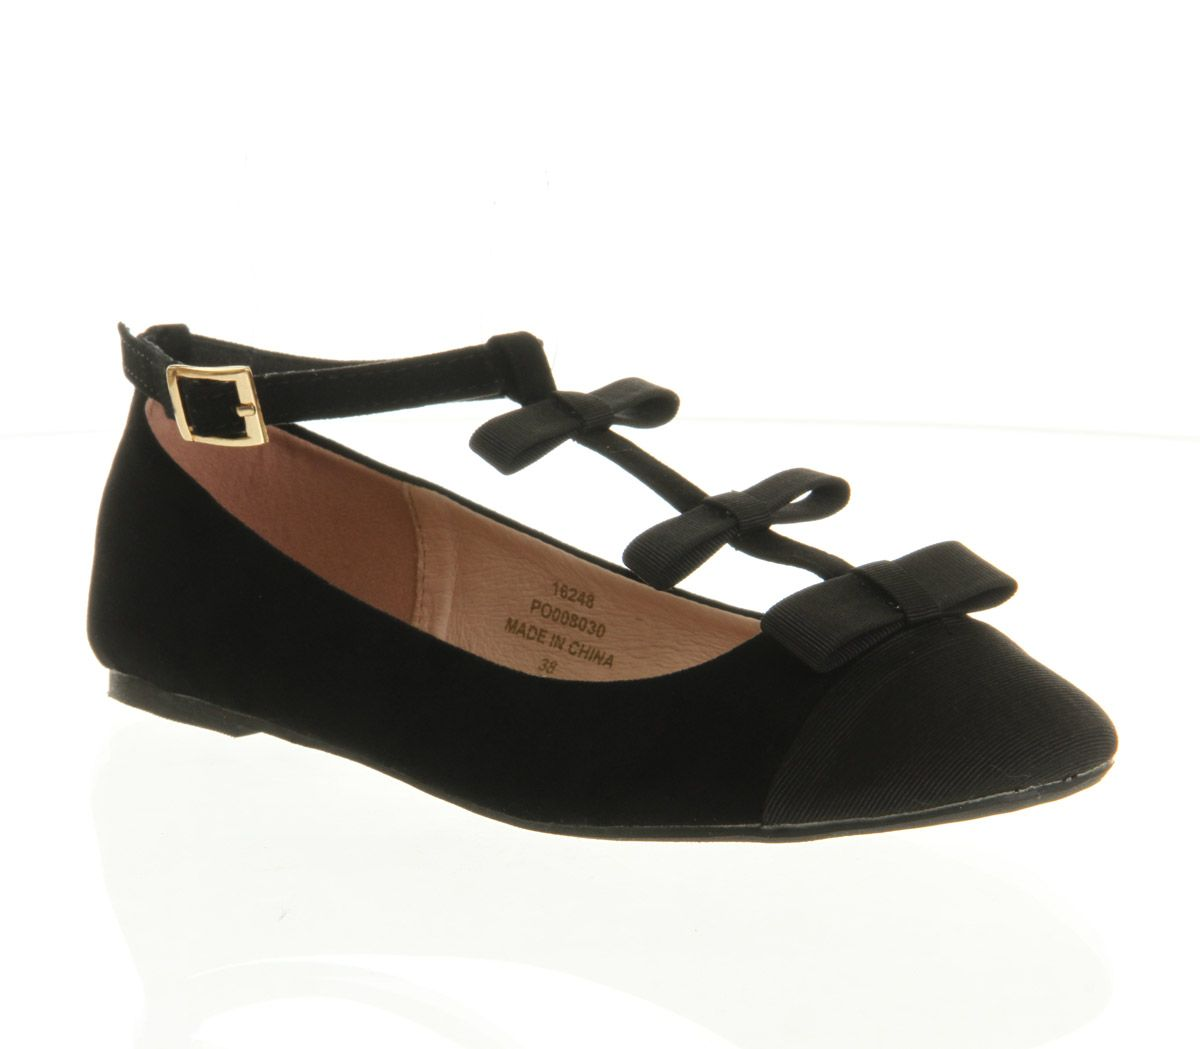 Karla t-bar round toe flat buckle ballerina shoes